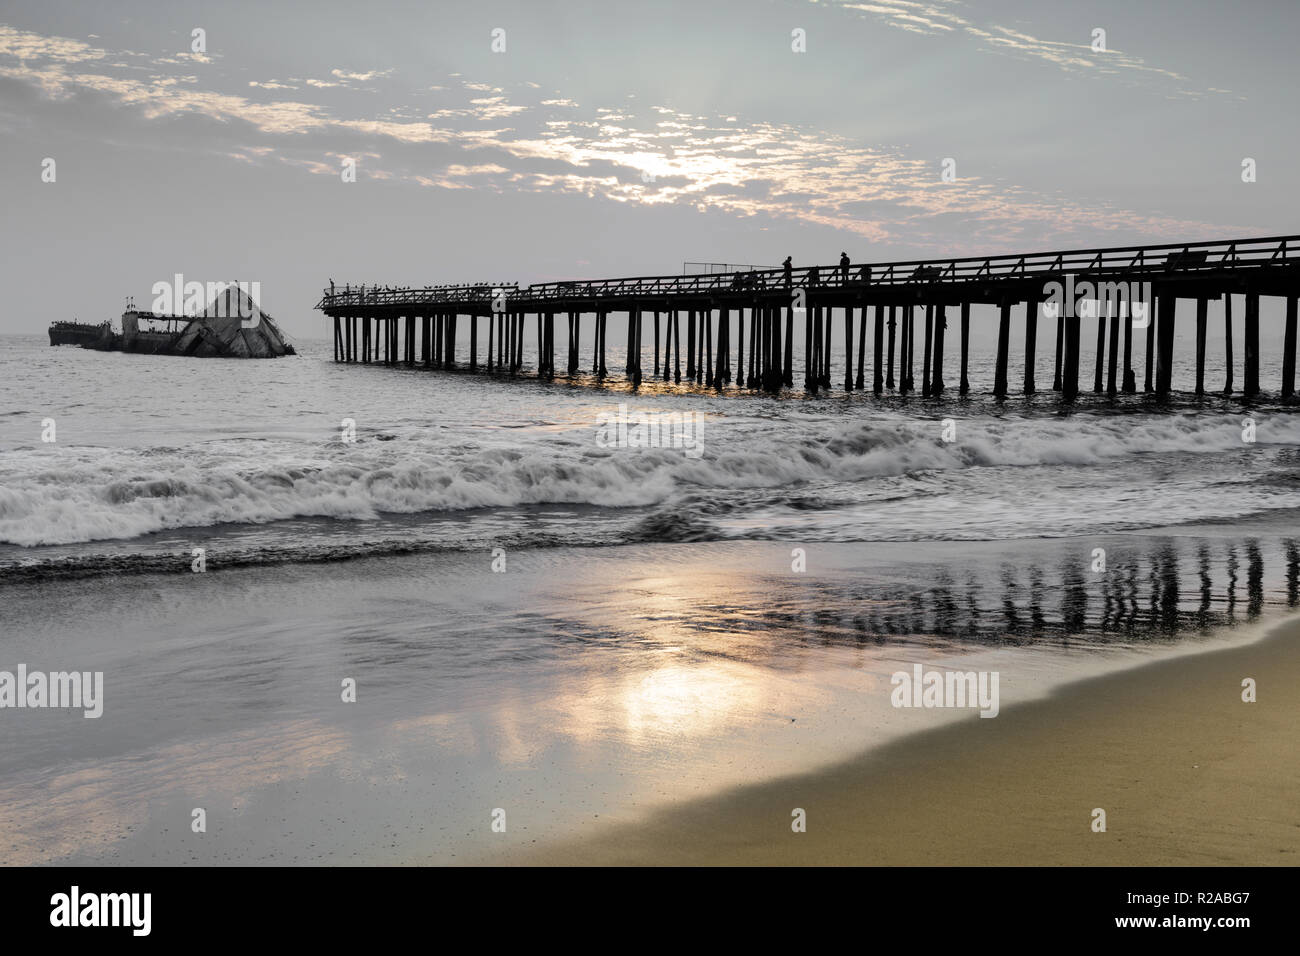 Sunset over Seacliff Pier and SS Palo Alto Shipwreck. - Stock Image